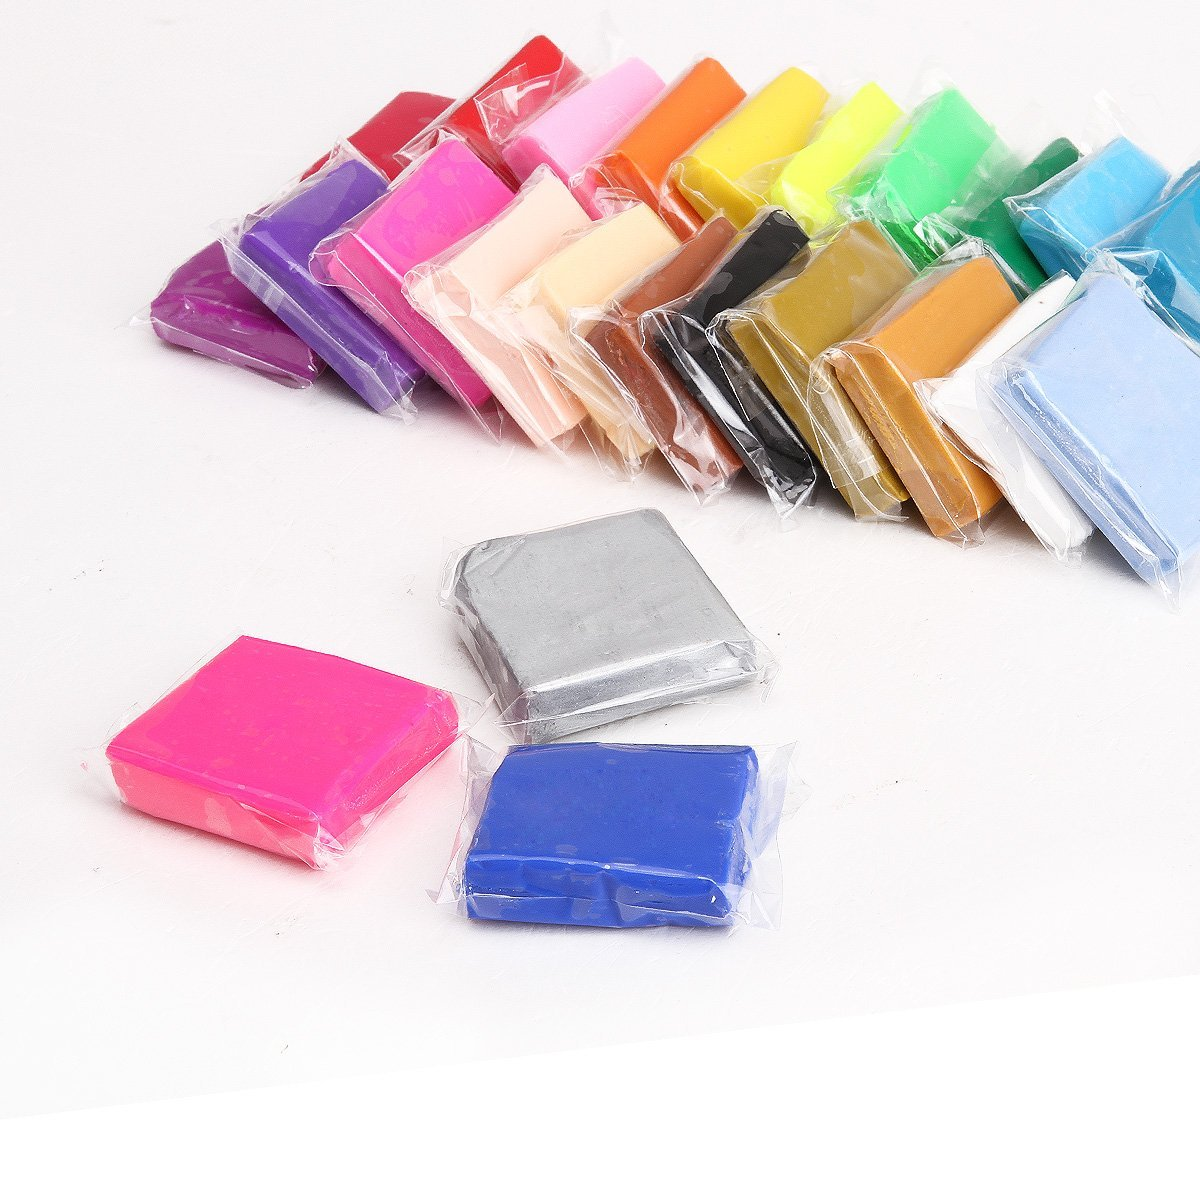 New Style 24 Colors + Pate Polymer Modeling Tools + Accessories + Crystal Yarn + Roll